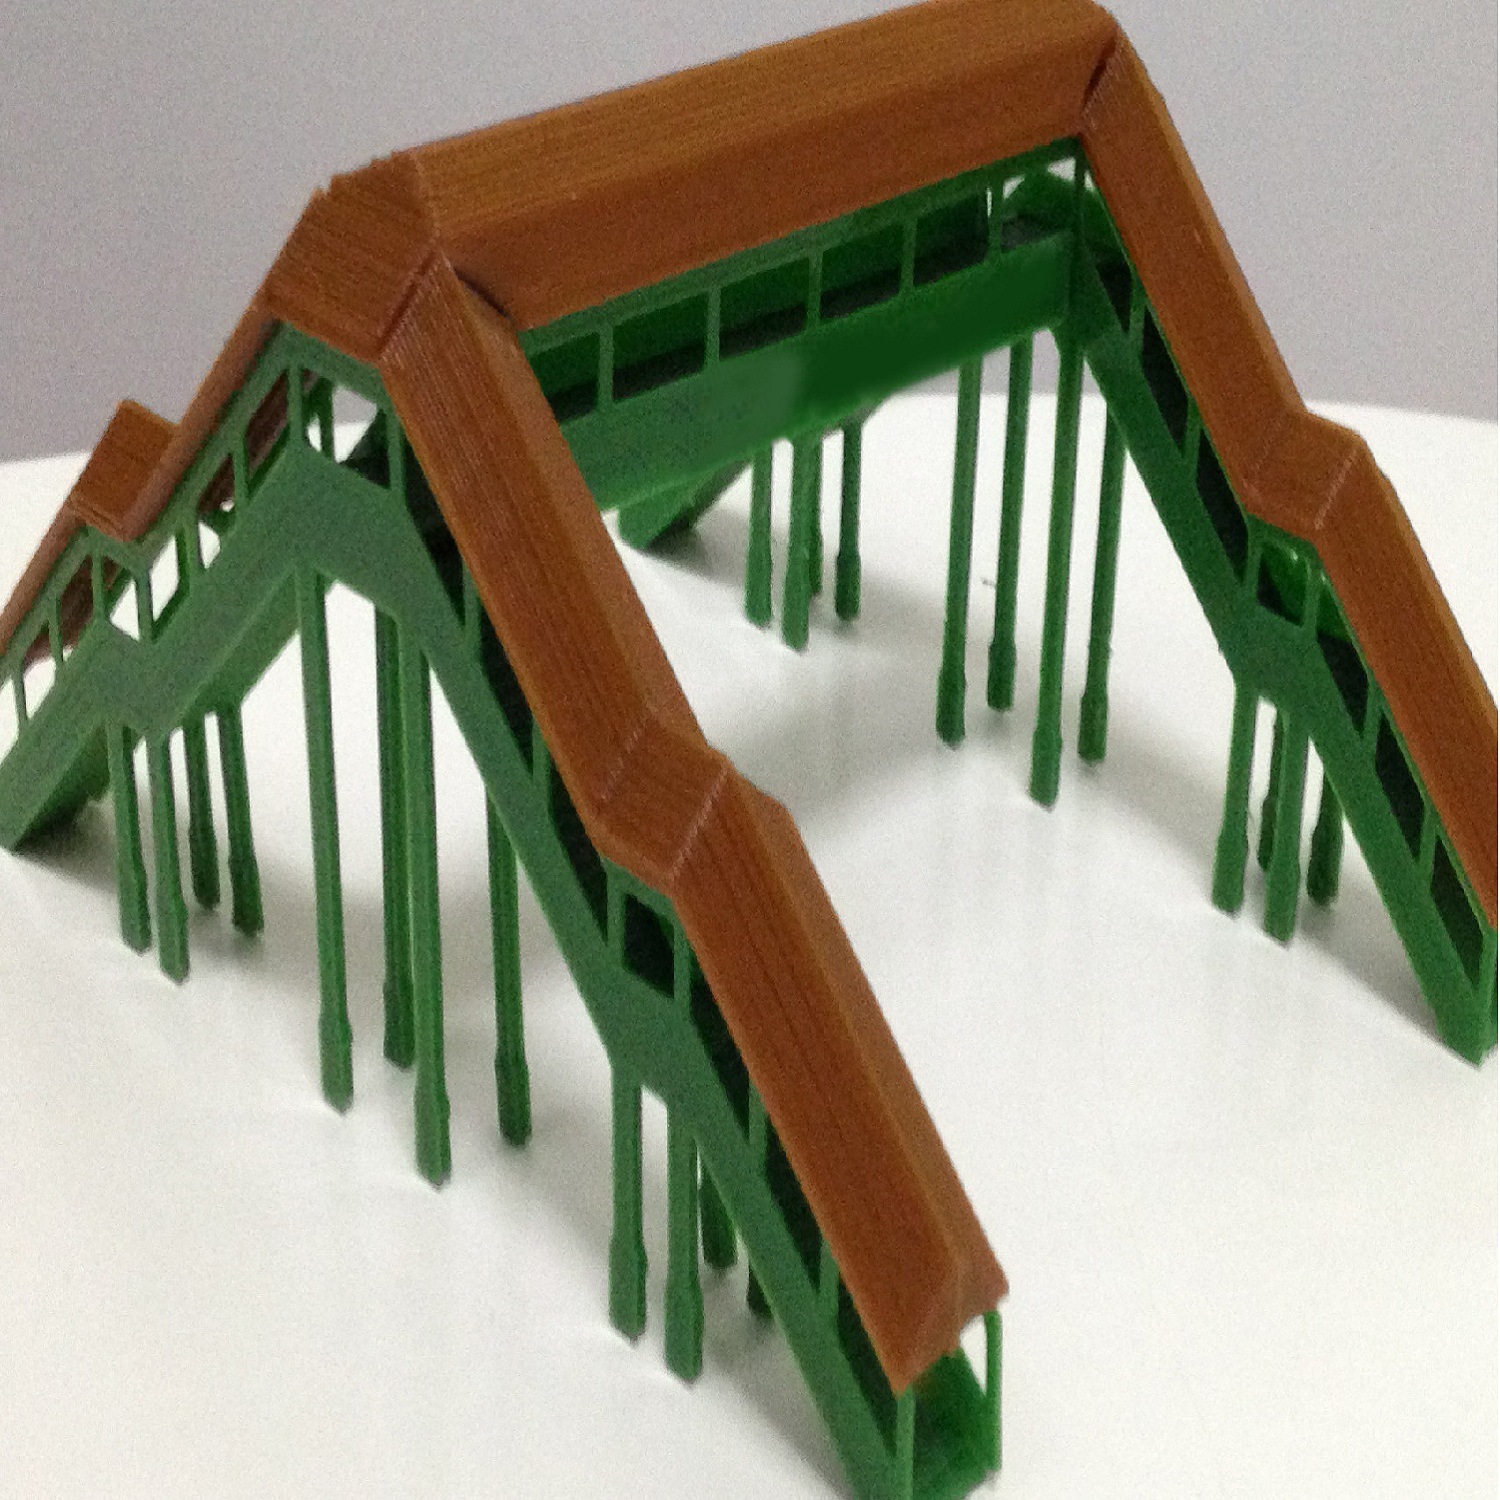 1:160 Scale pedestrian bridge model with cover at the top for railway model train layout